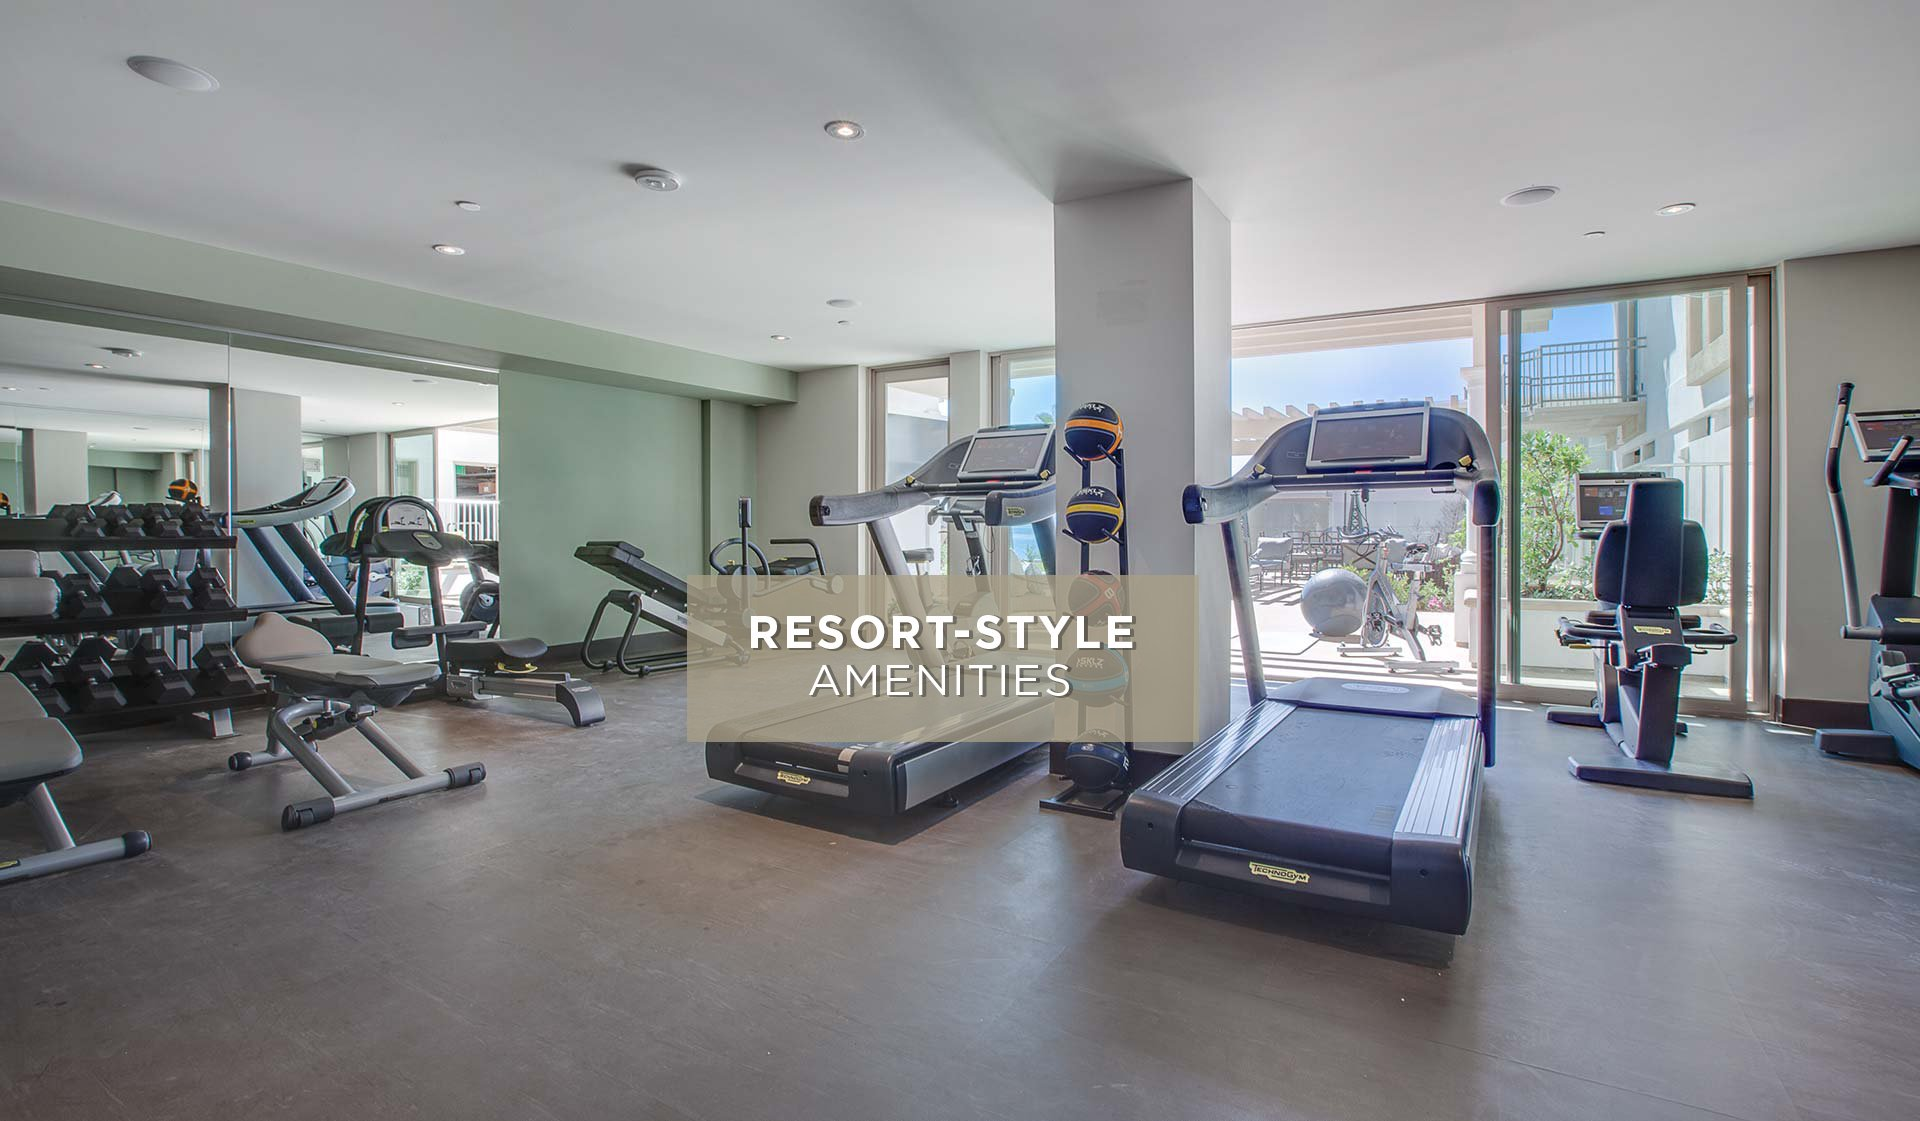 Ocean House On Prospect - Fitness Center - La Jolla, CA